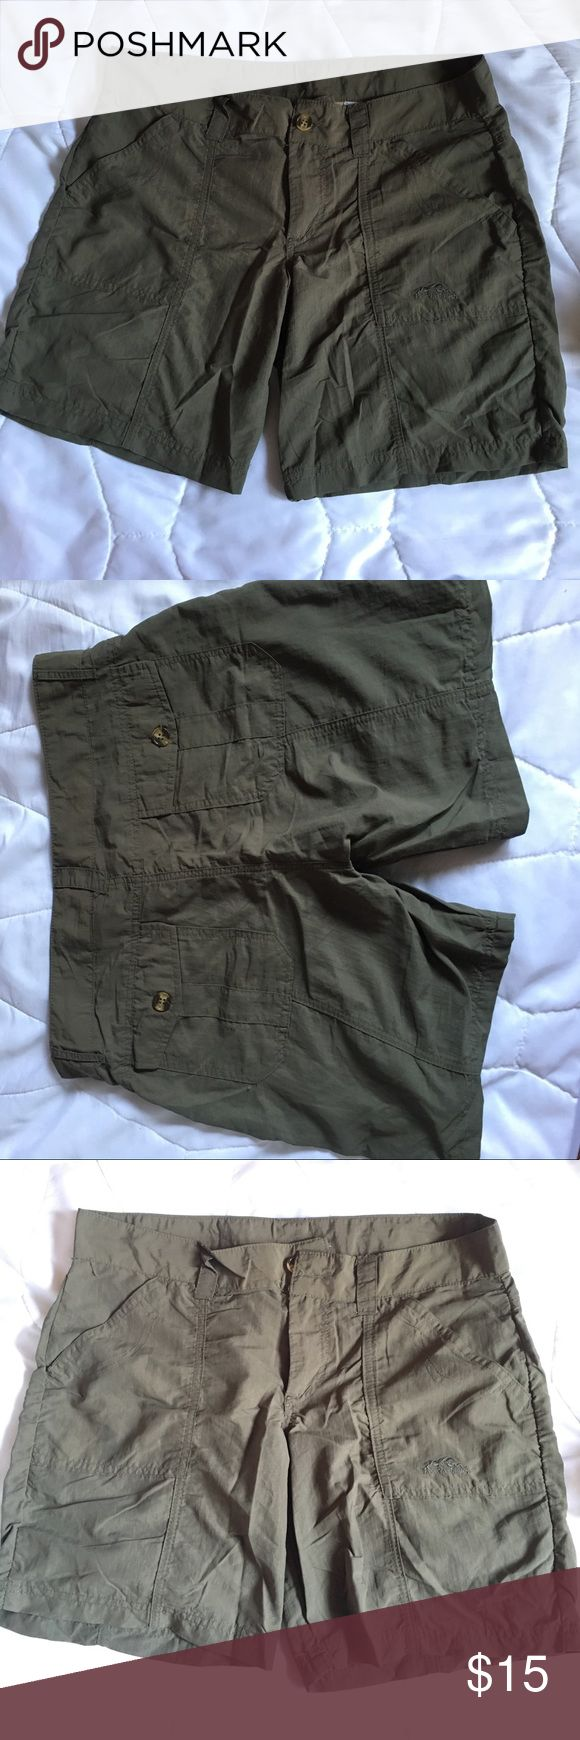 Women's Cargo shorts Olive green colored shorts for working in the garden. Worn a couple times for volunteer work in another country. Super comfy. Size small but would fit a medium better. American Outback Shorts Cargos